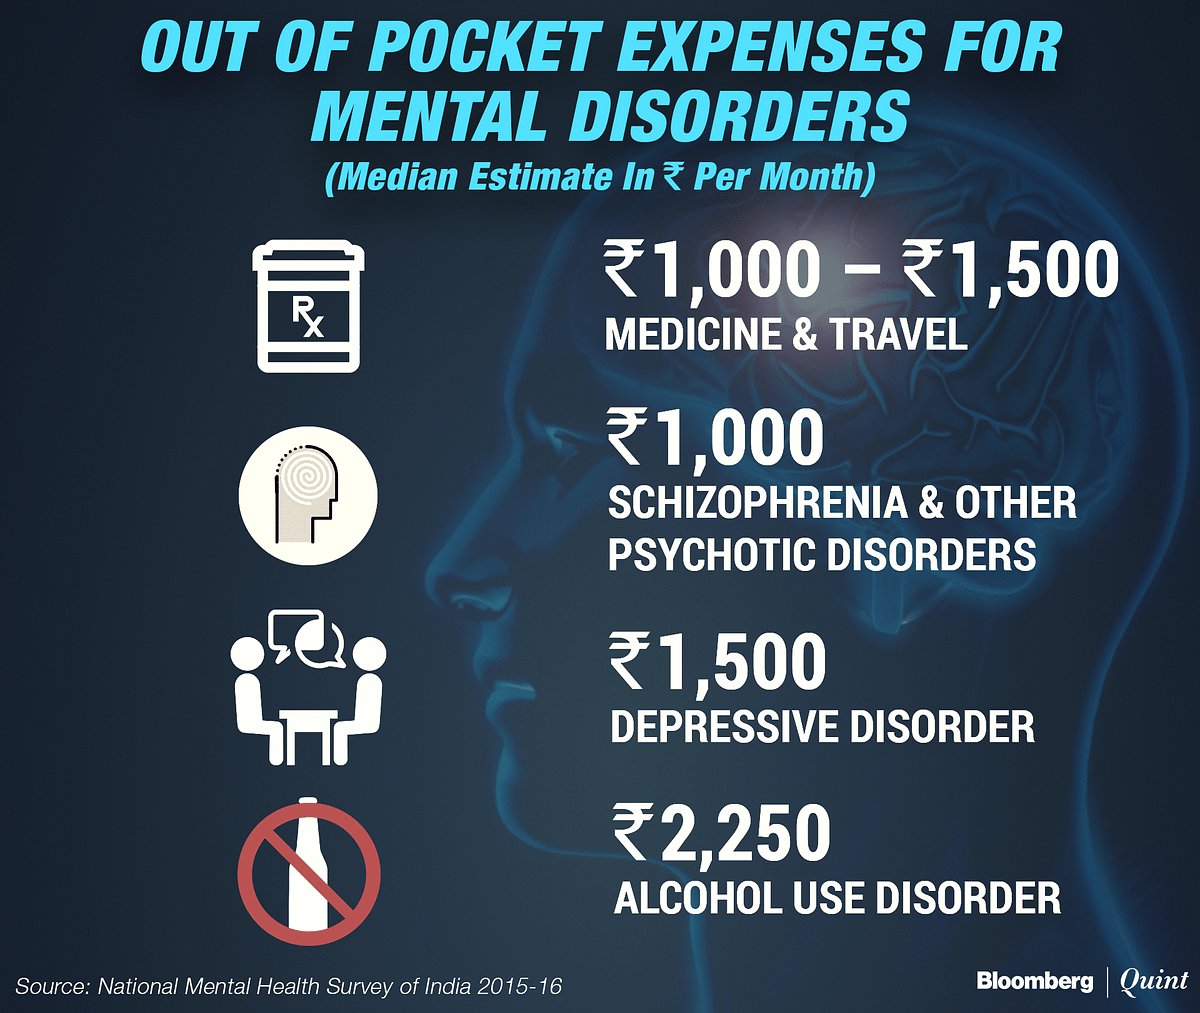 Mental Health Insurance: India Breaks A Taboo But Is That Enough?